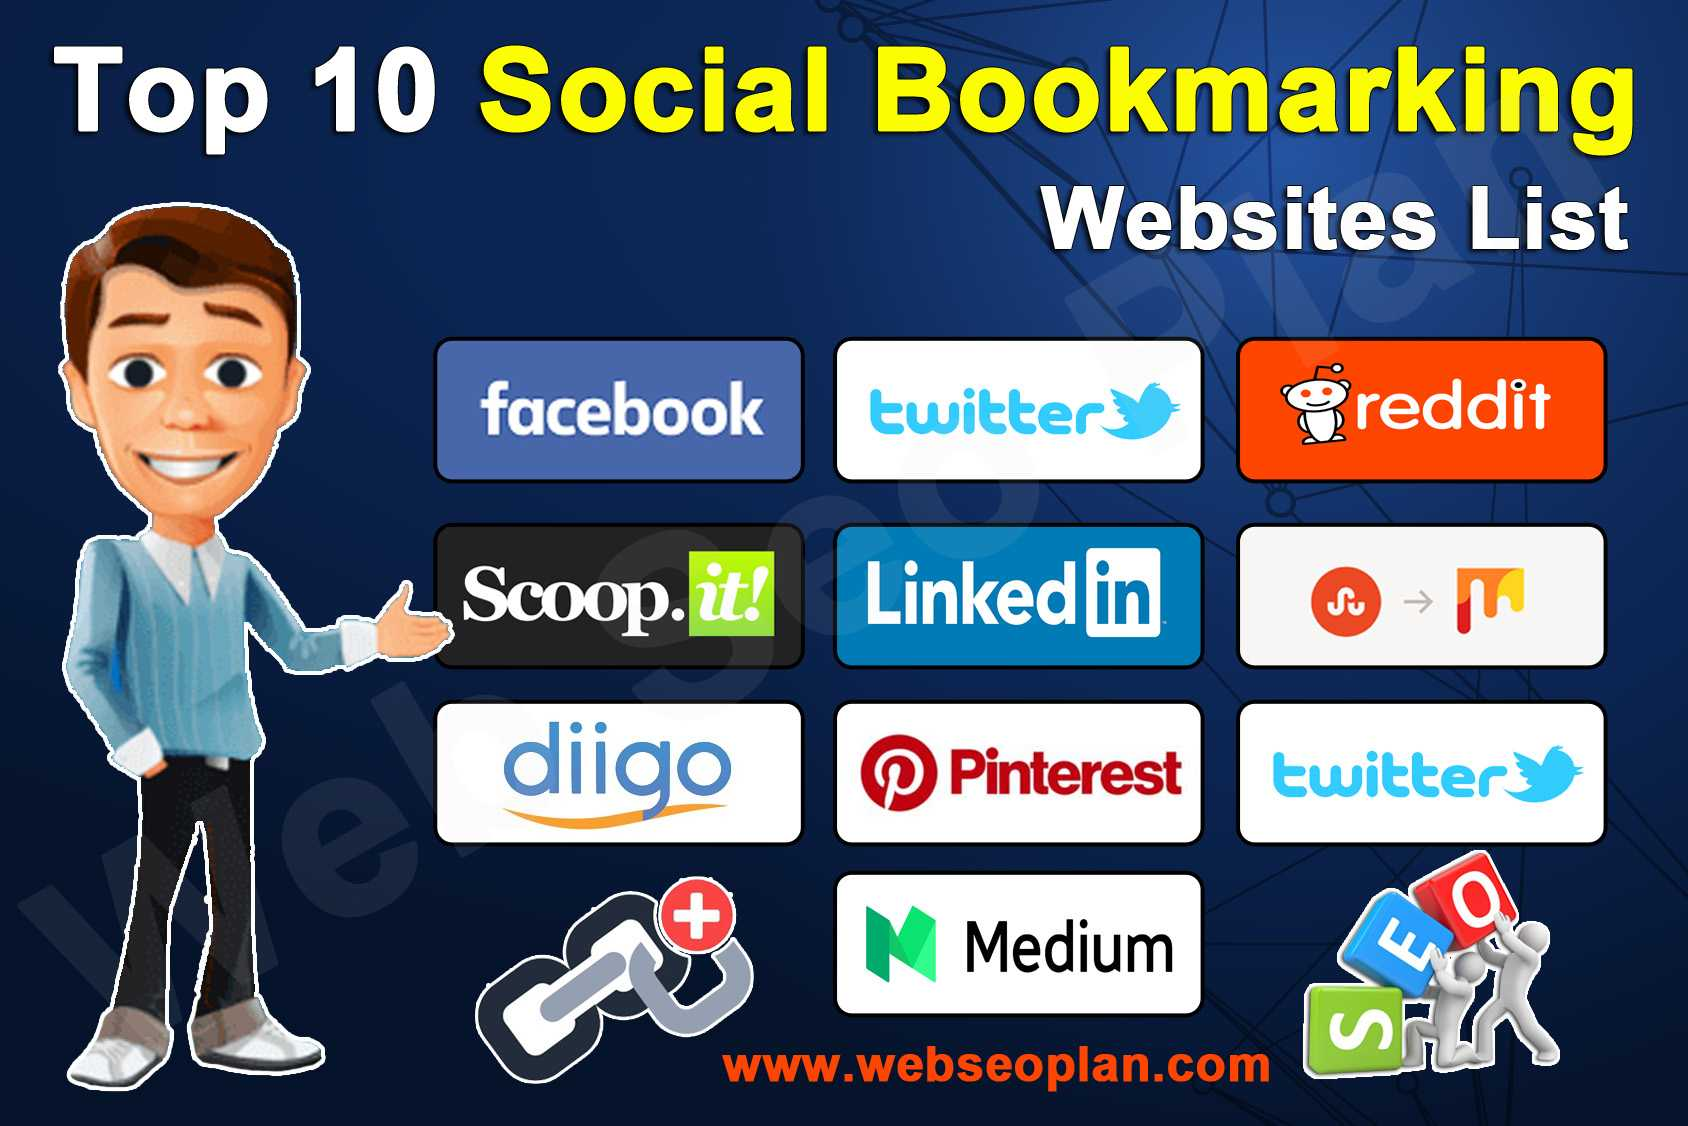 Top 10 Social Bookmarking Websites